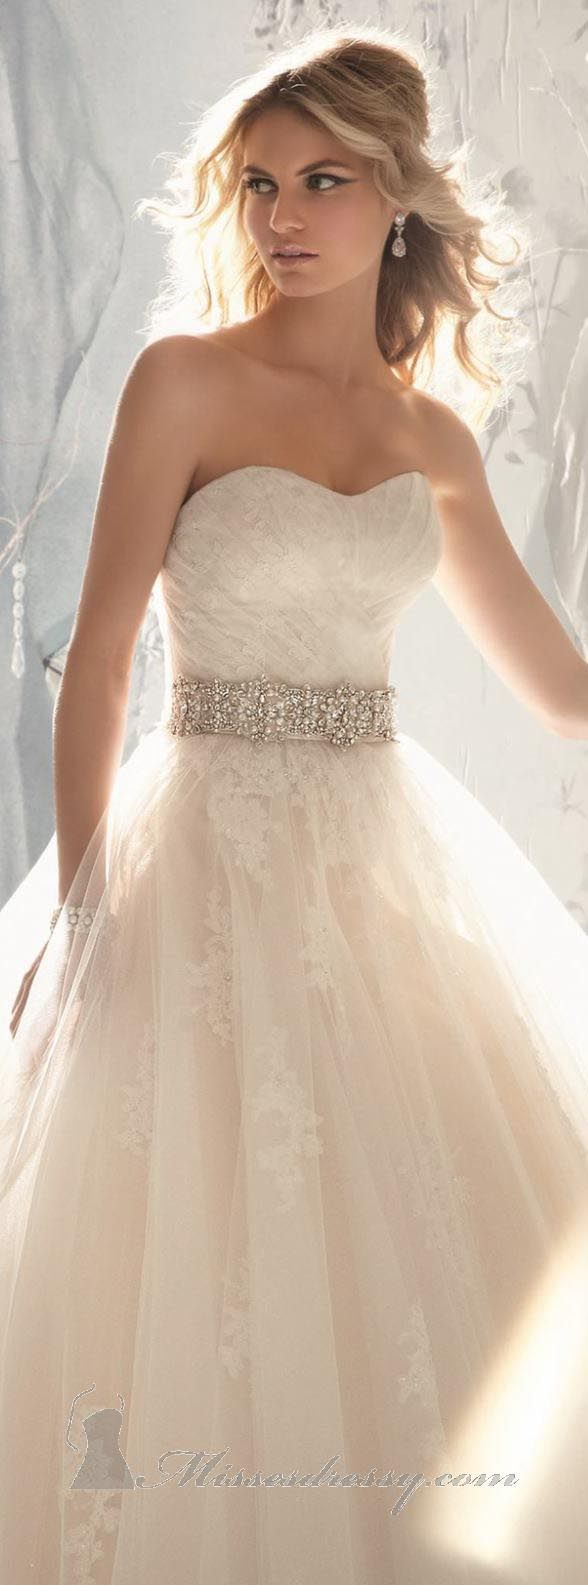 Embellished Pleated Strapless Gown by Bridal by Mori Lee ♥ gorgeous ...